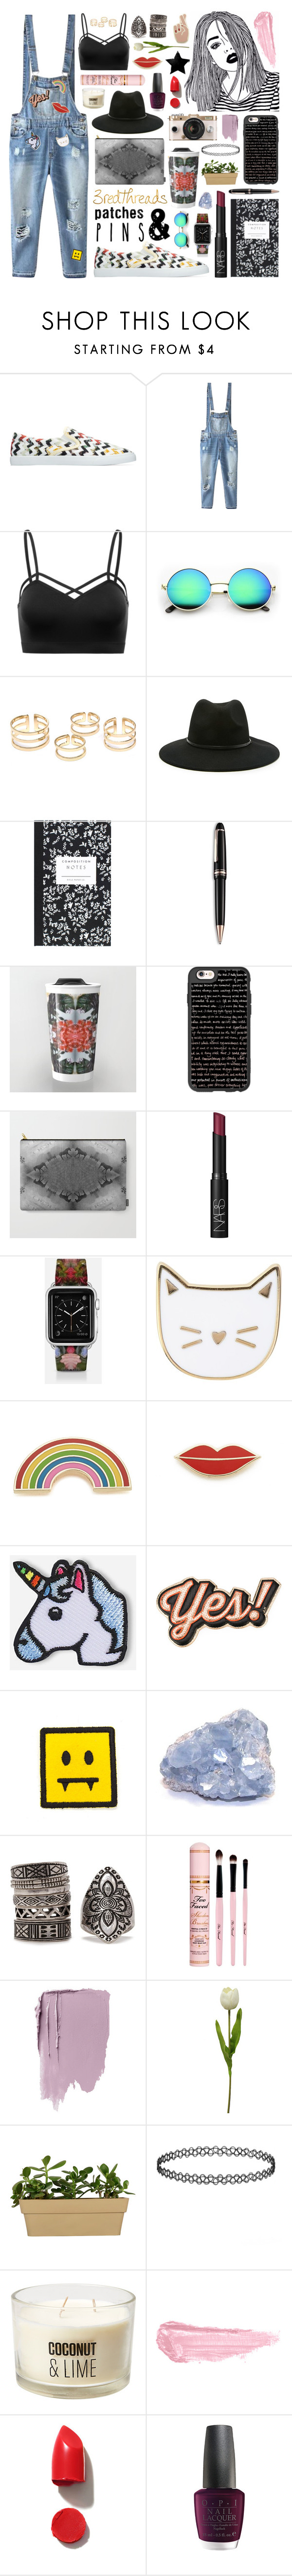 """Patches + Pins"" by levon-3redthreads ❤ liked on Polyvore featuring Relaxfeel, Forever 21, Dot & Bo, Montblanc, Casetify, NARS Cosmetics, Des Petits Hauts, Georgia Perry, Hipstapatch and Anya Hindmarch"